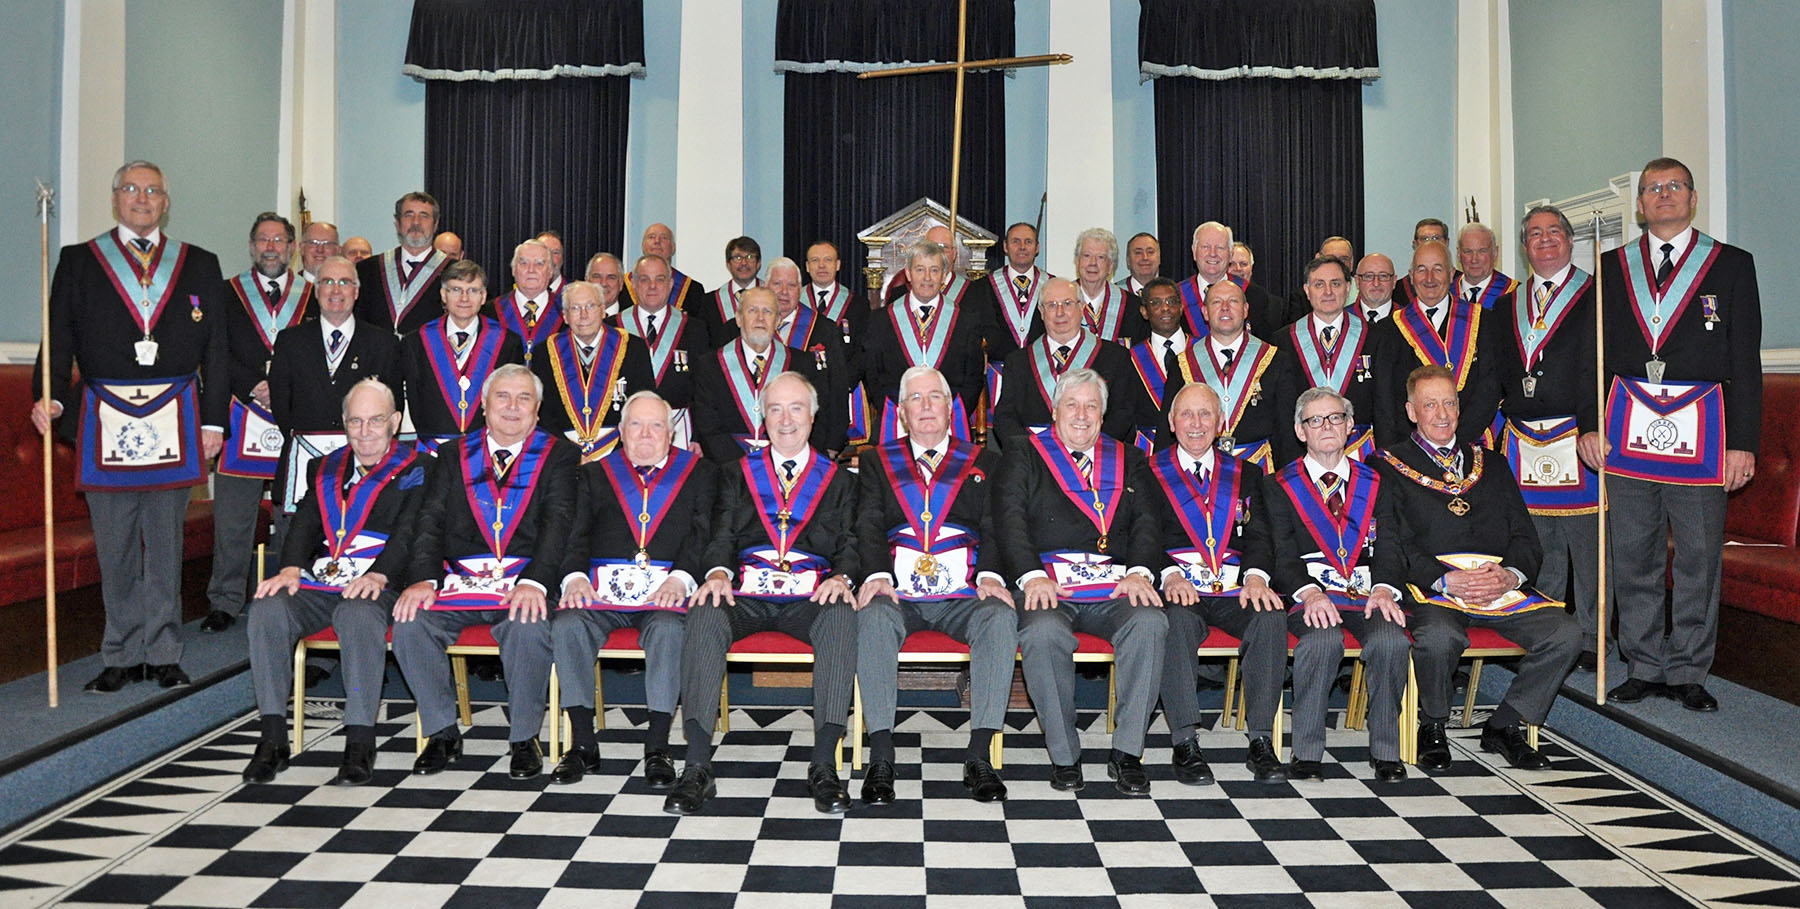 Mark Provincial Grand Stewards Lodge - Lecture on the 4th Degree